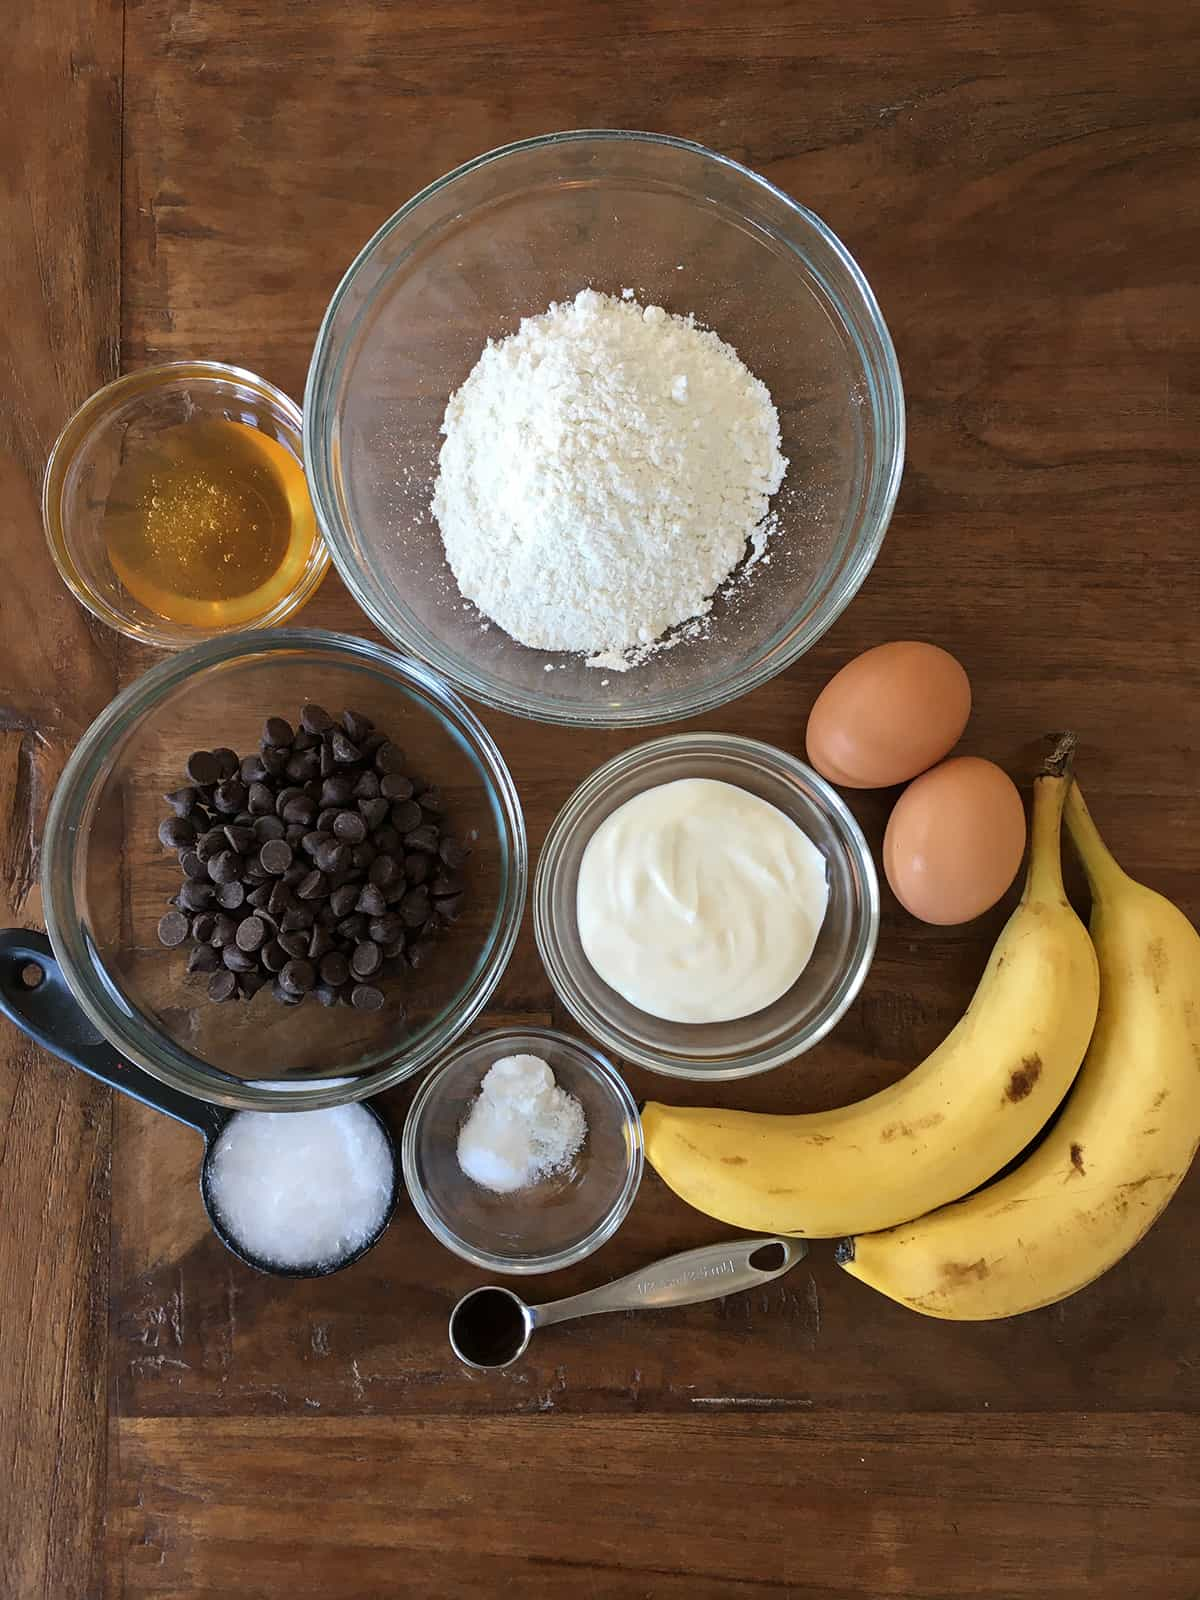 Banana chocolate chip muffin ingredients, some in glass meal prep bowls, on a brown wood table